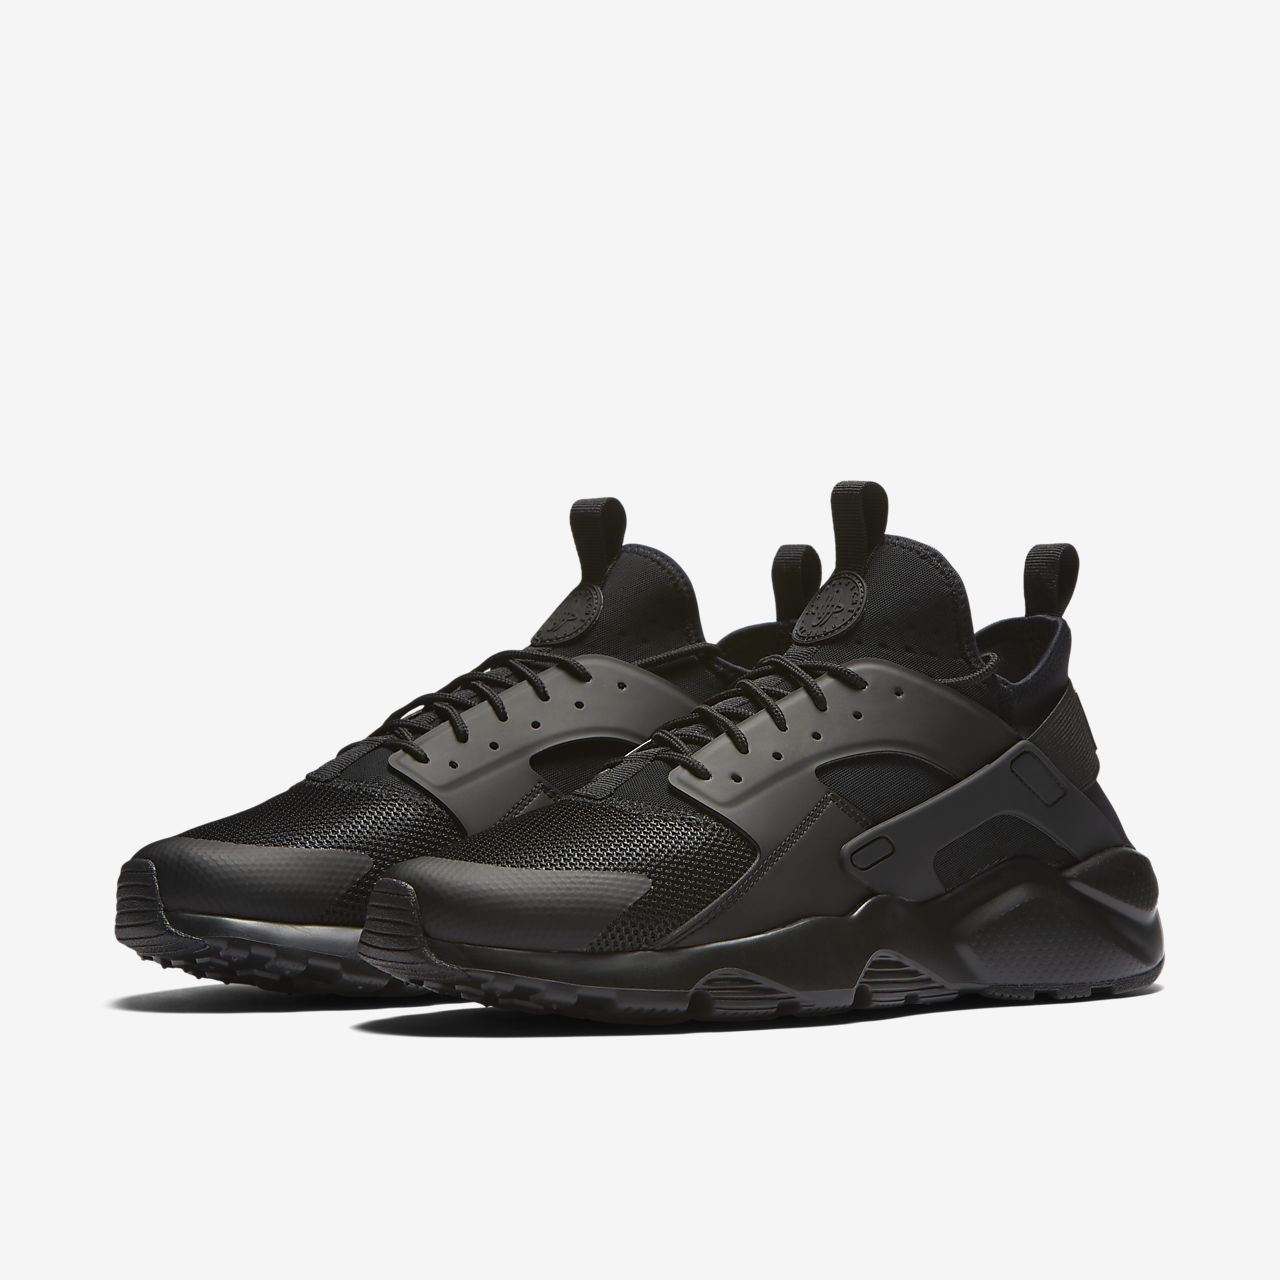 Nike Huarache D'air Triples Coupes De Cheveux Mens Noirs braderie aberdeen réduction abordable LVTjm